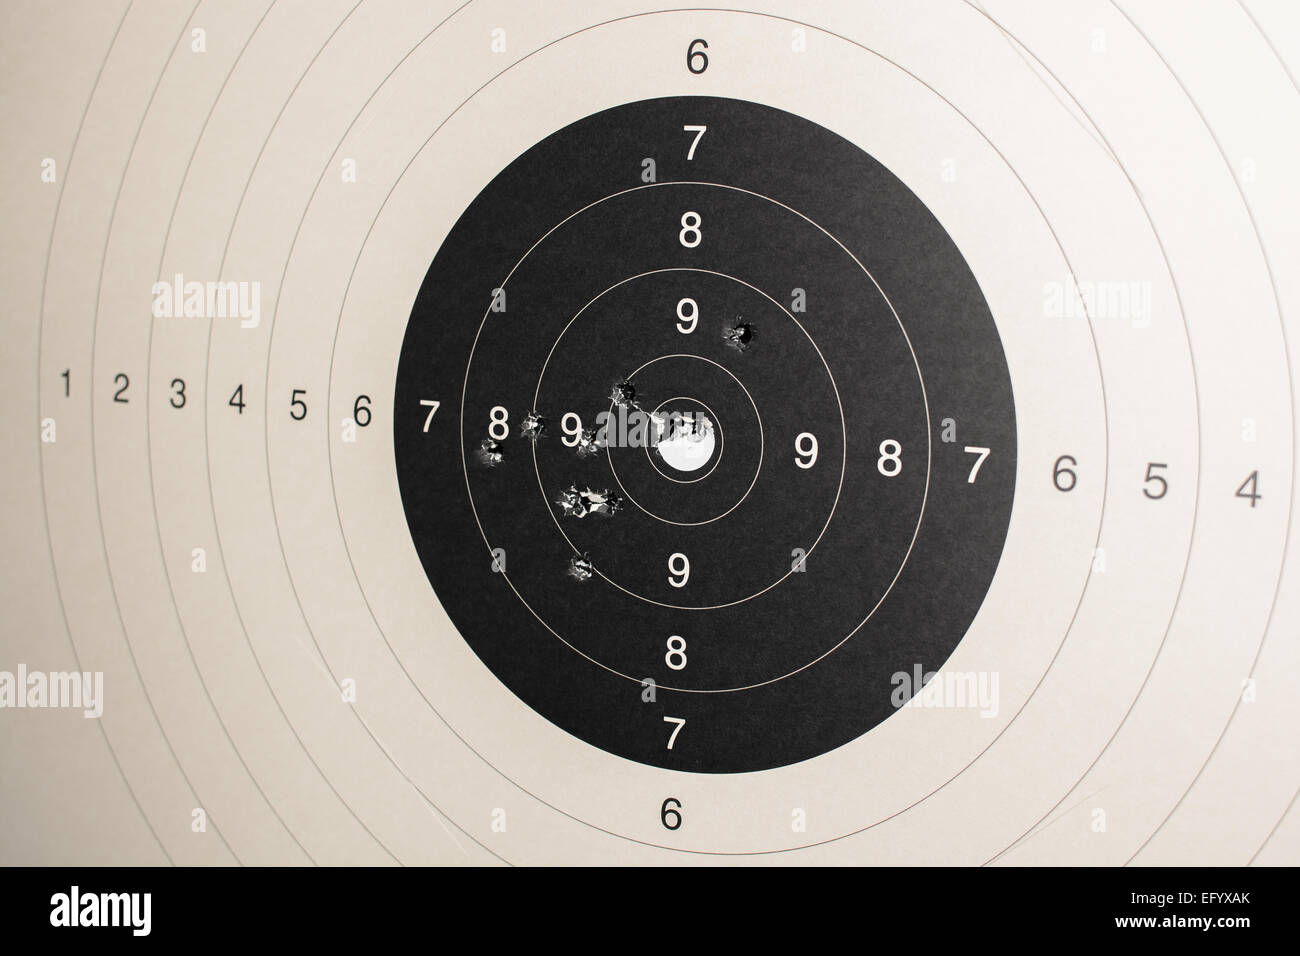 Target With Hits - Stock Image